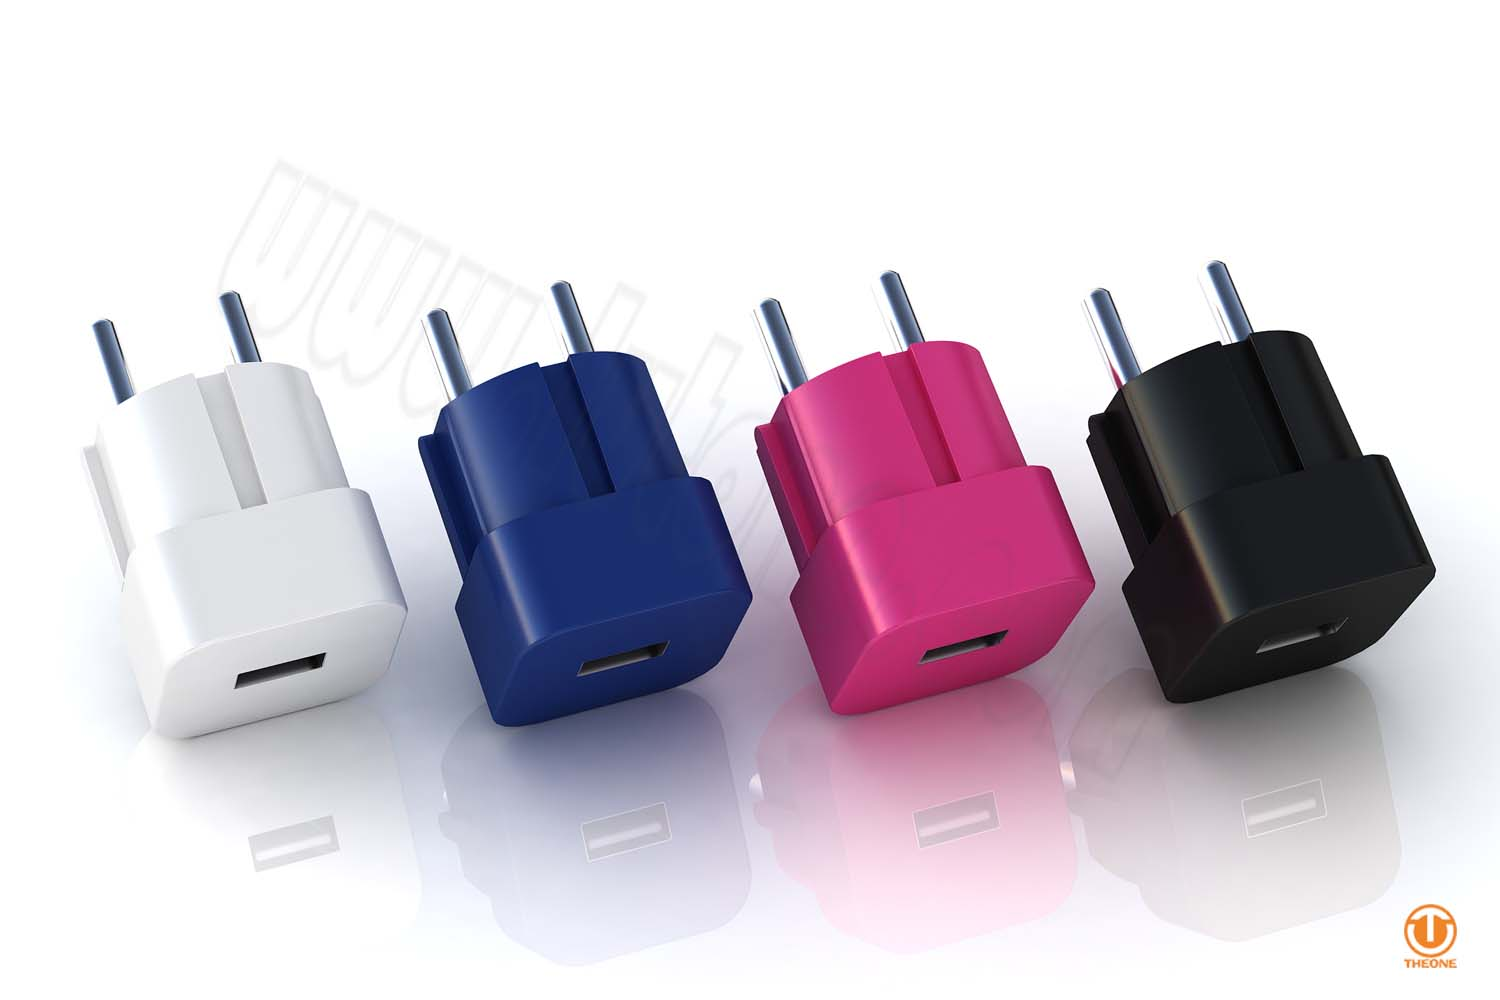 tc03b0-3 usb wall charger